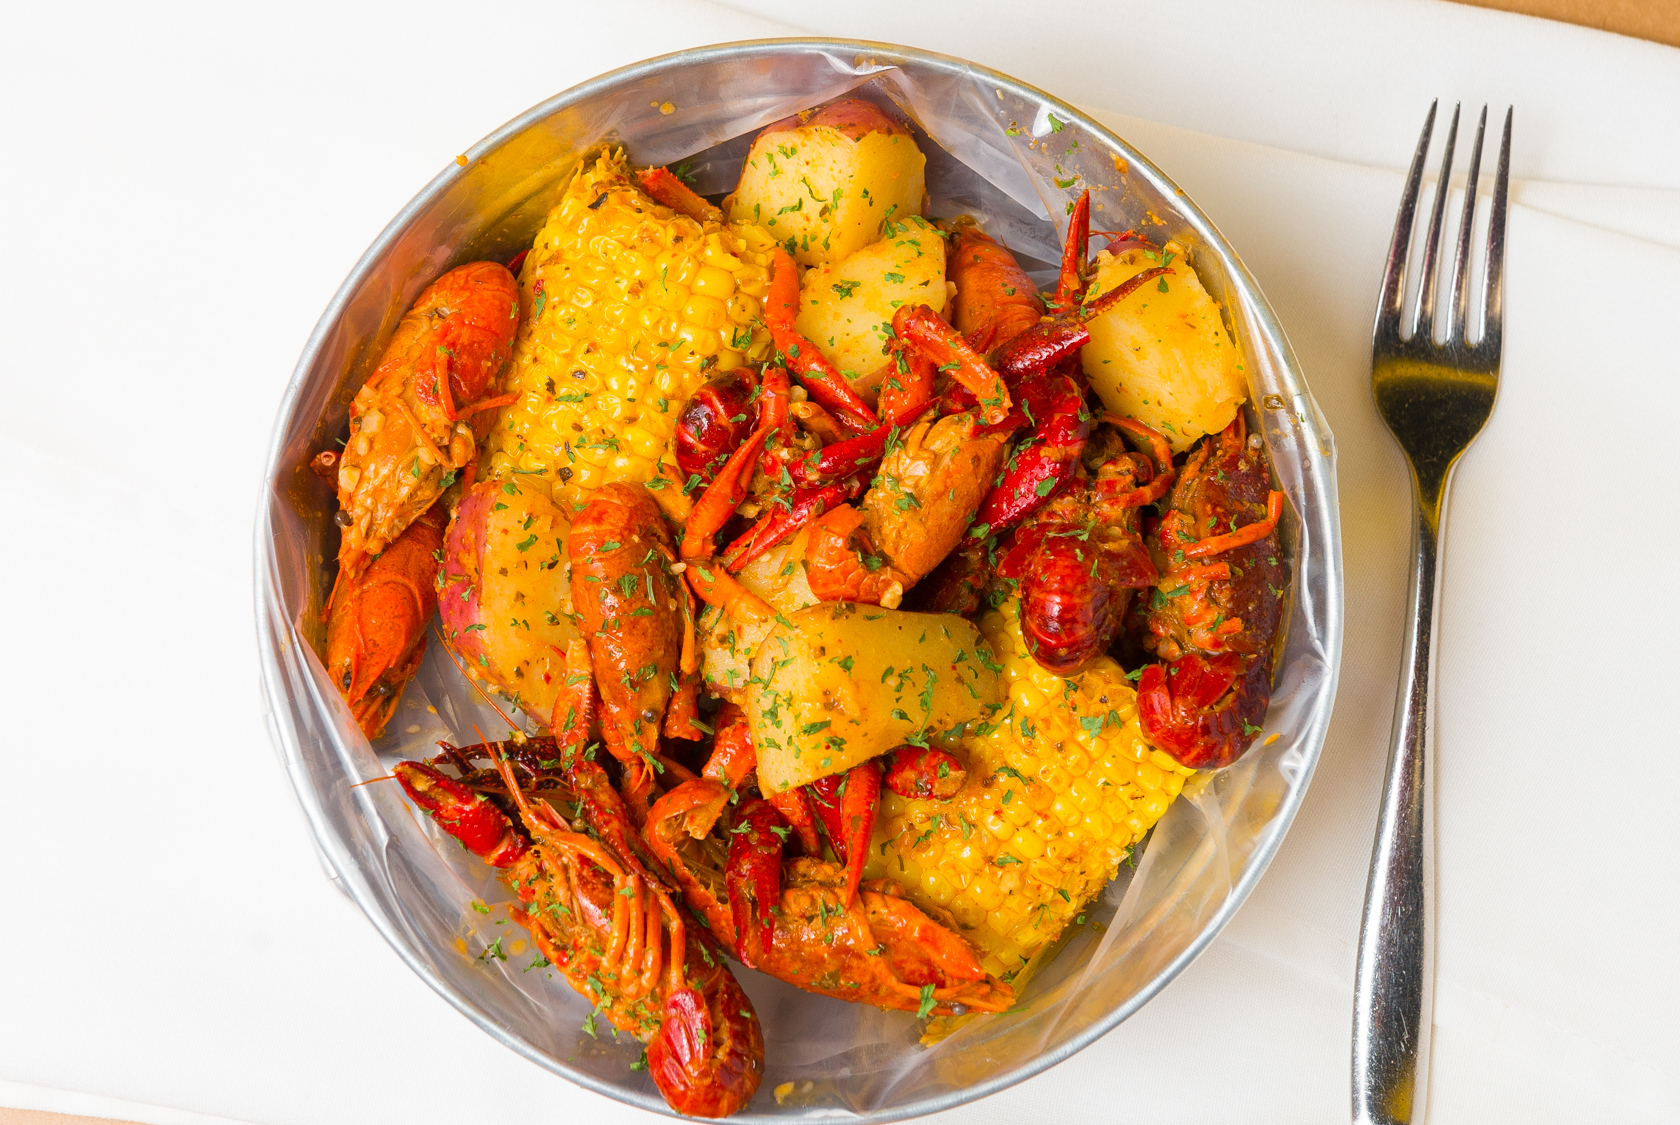 Crawfish Boil with Corn and Potatos